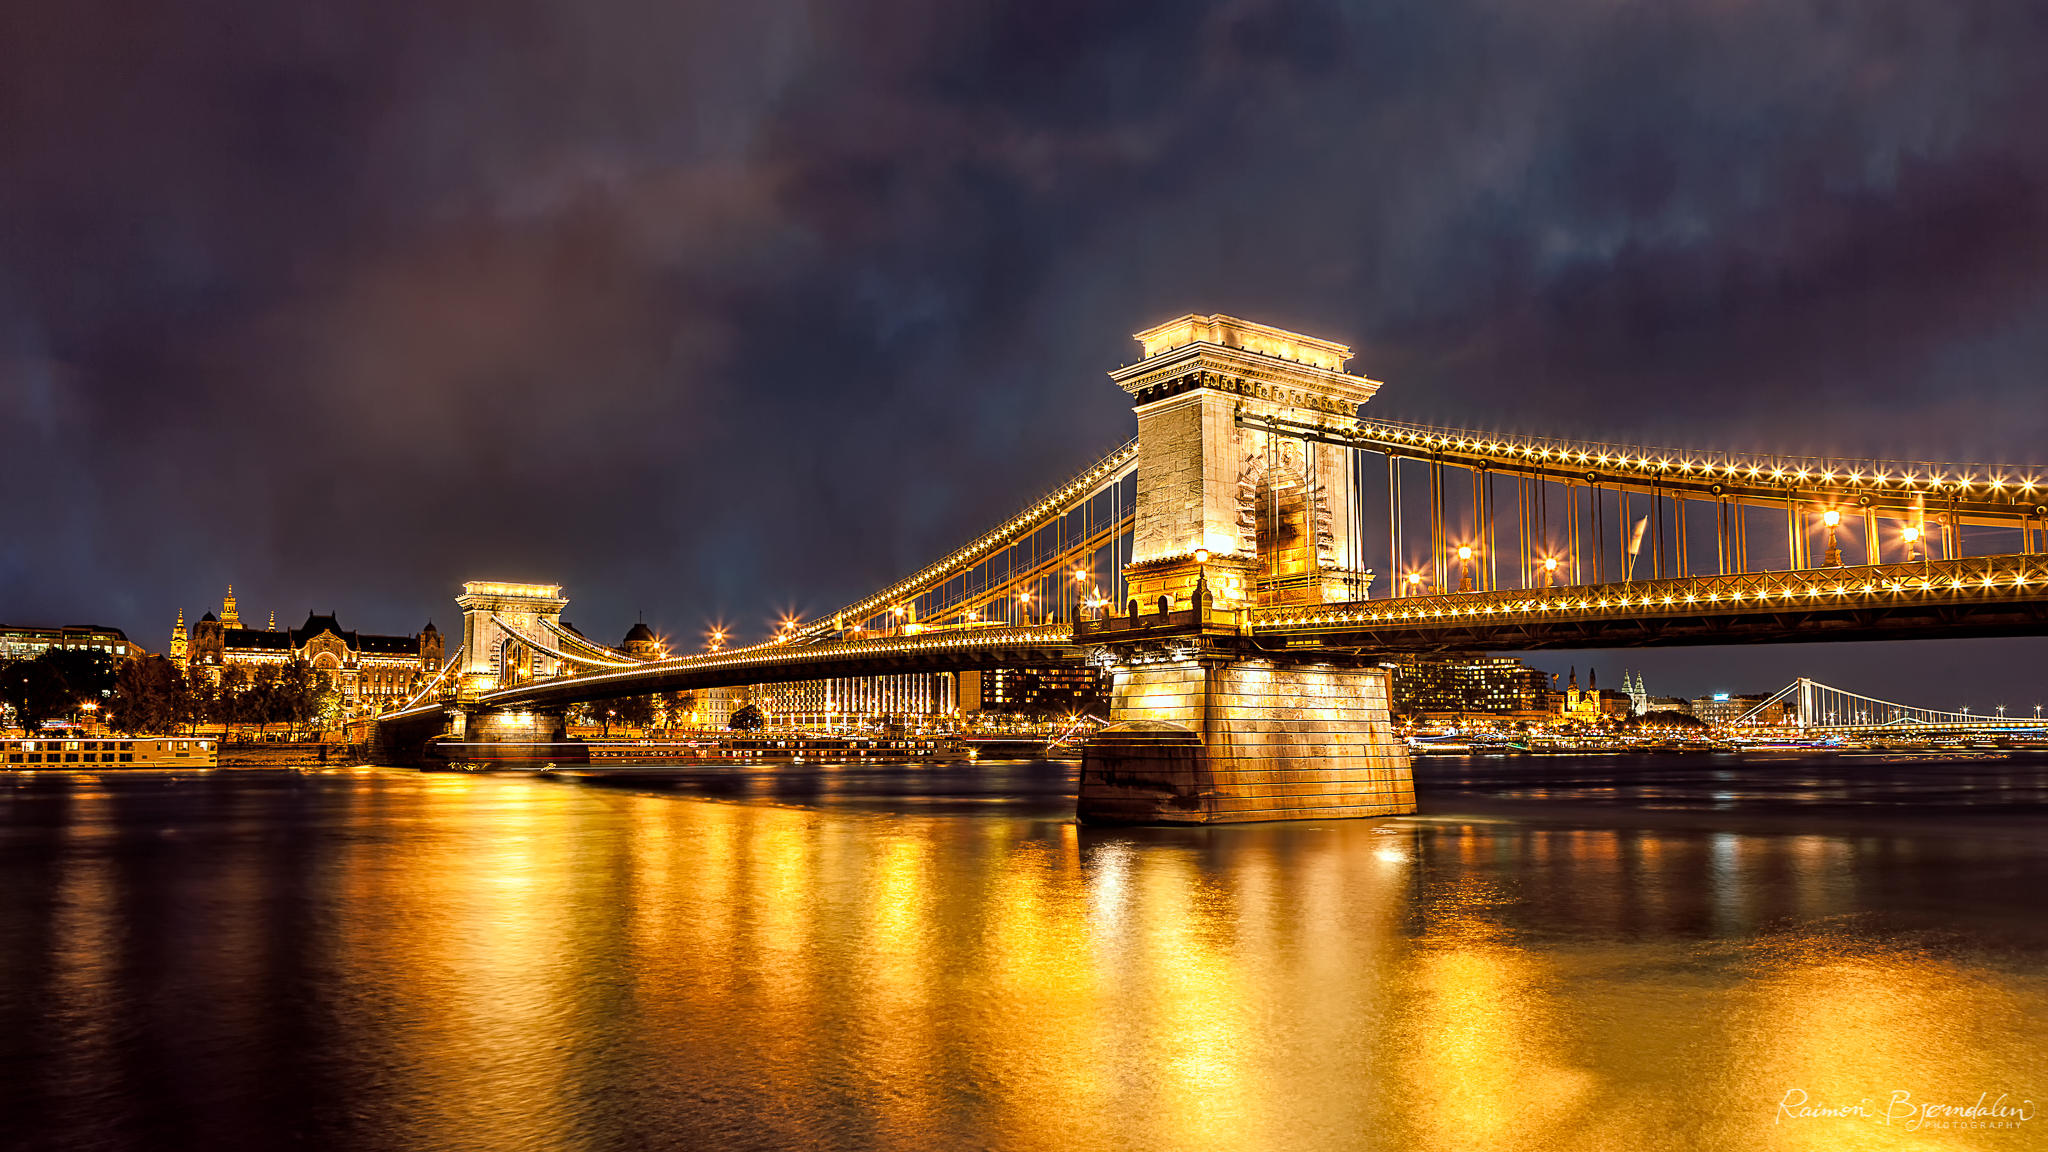 The chain bridge running over the Donau river in Budapest, Hungary.